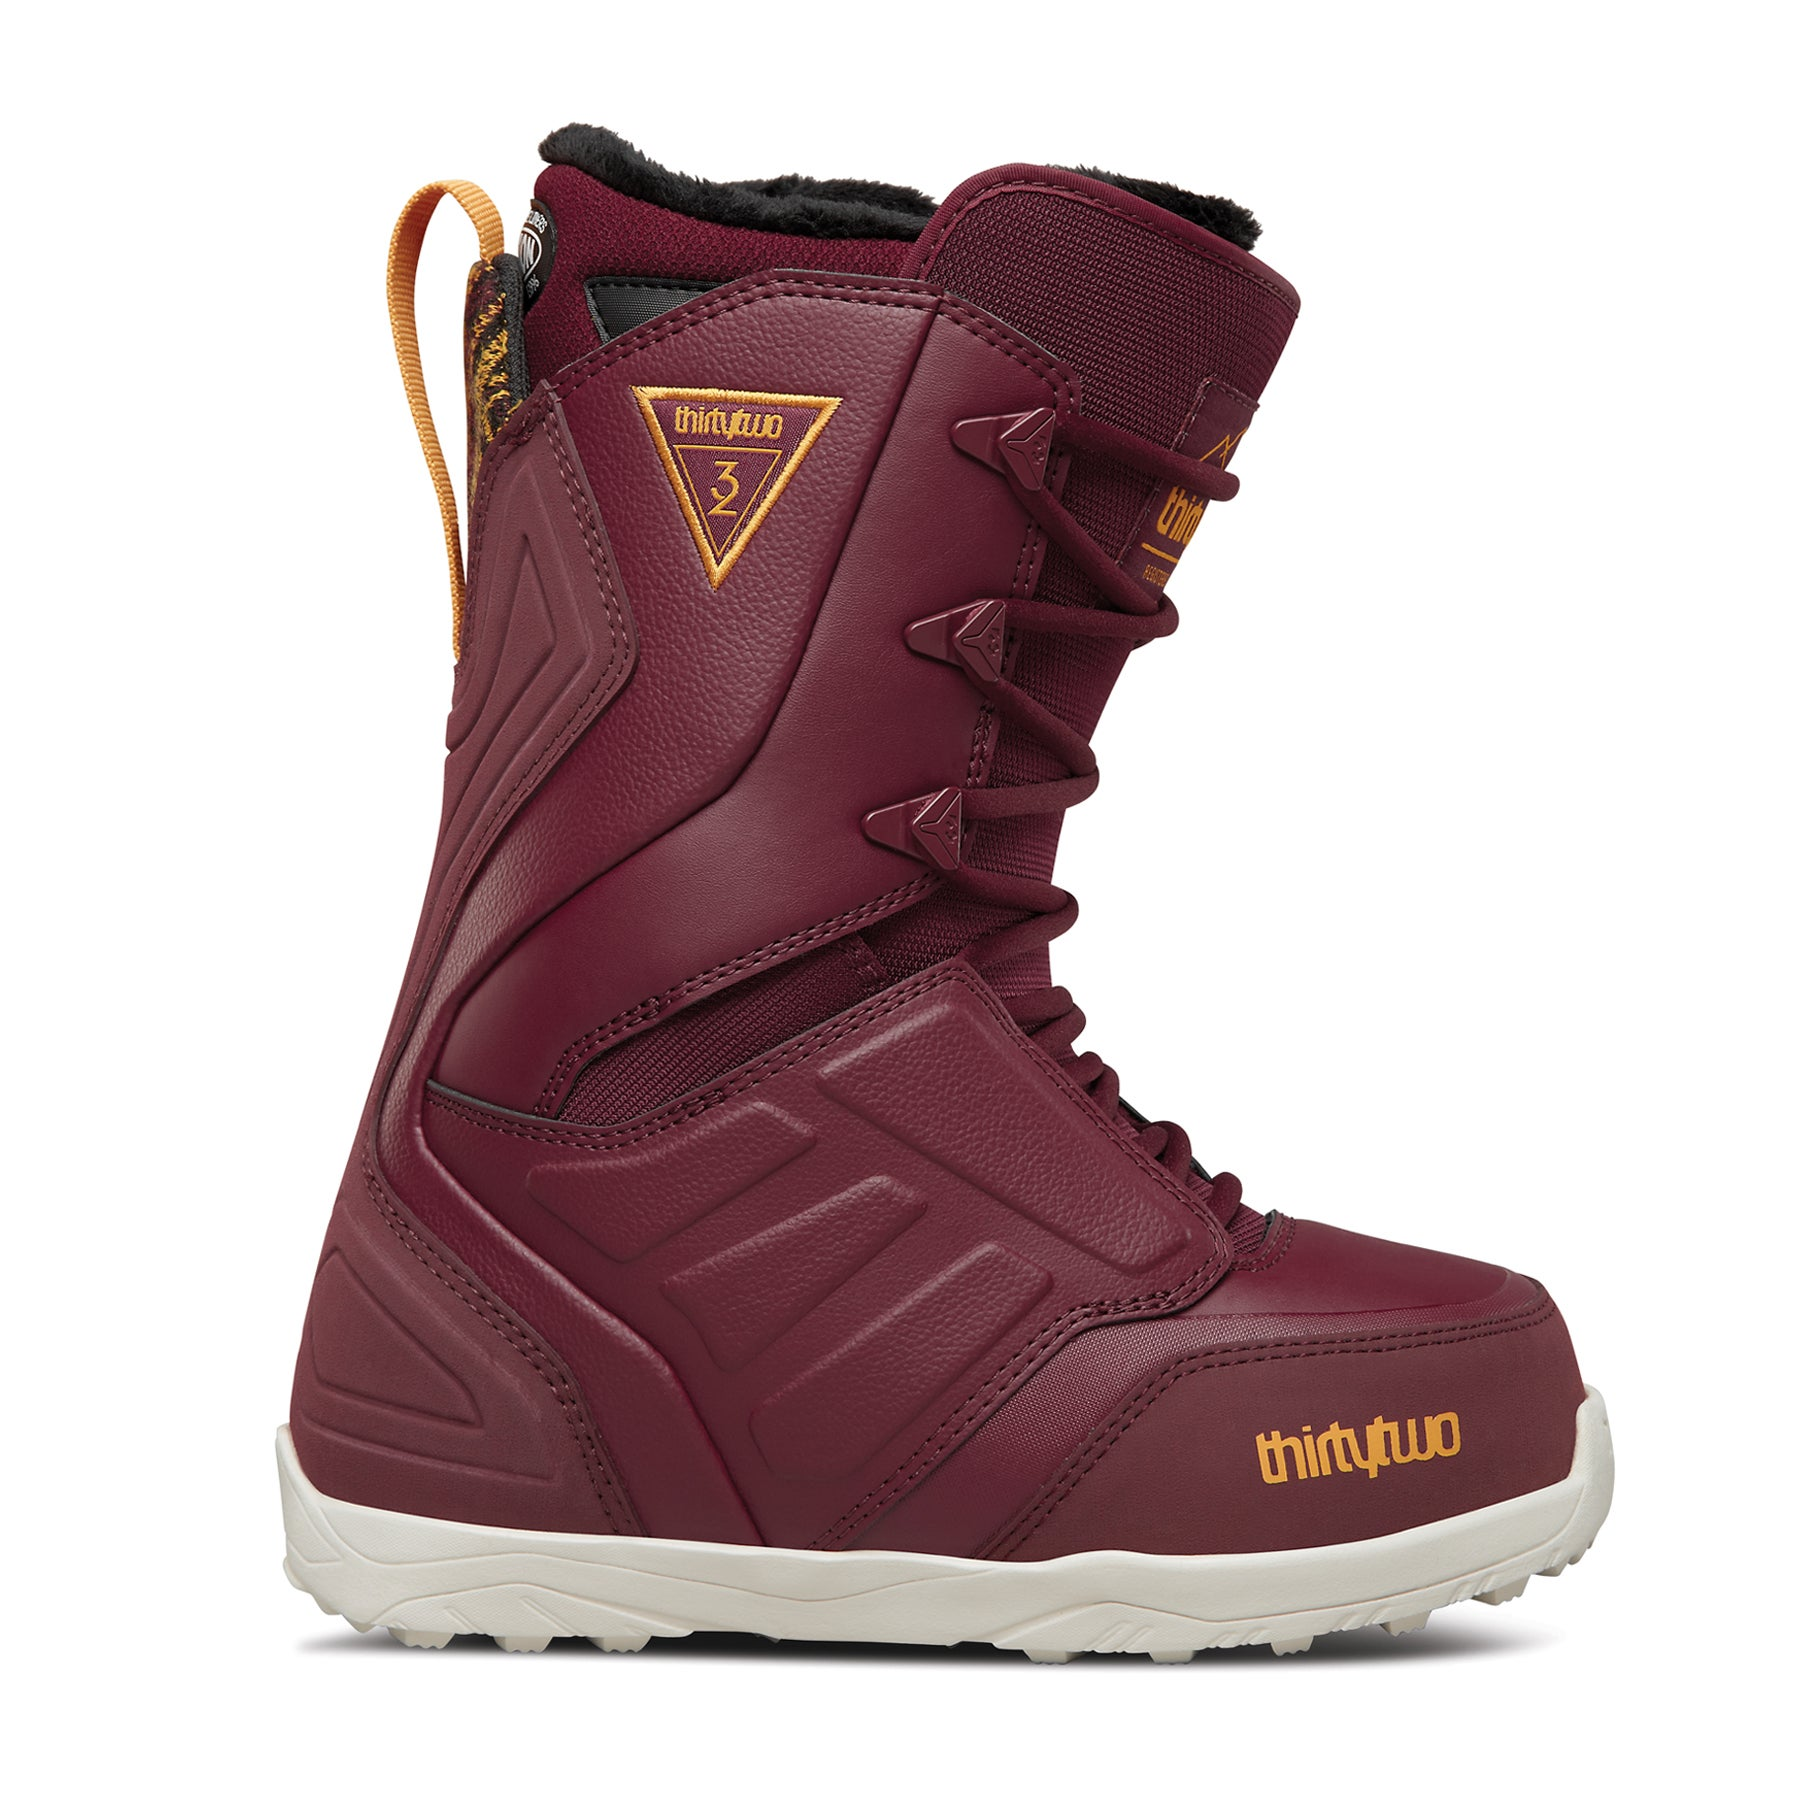 Thirty Two Lashed 2018 Womens Snowboard Boots - Burgundy